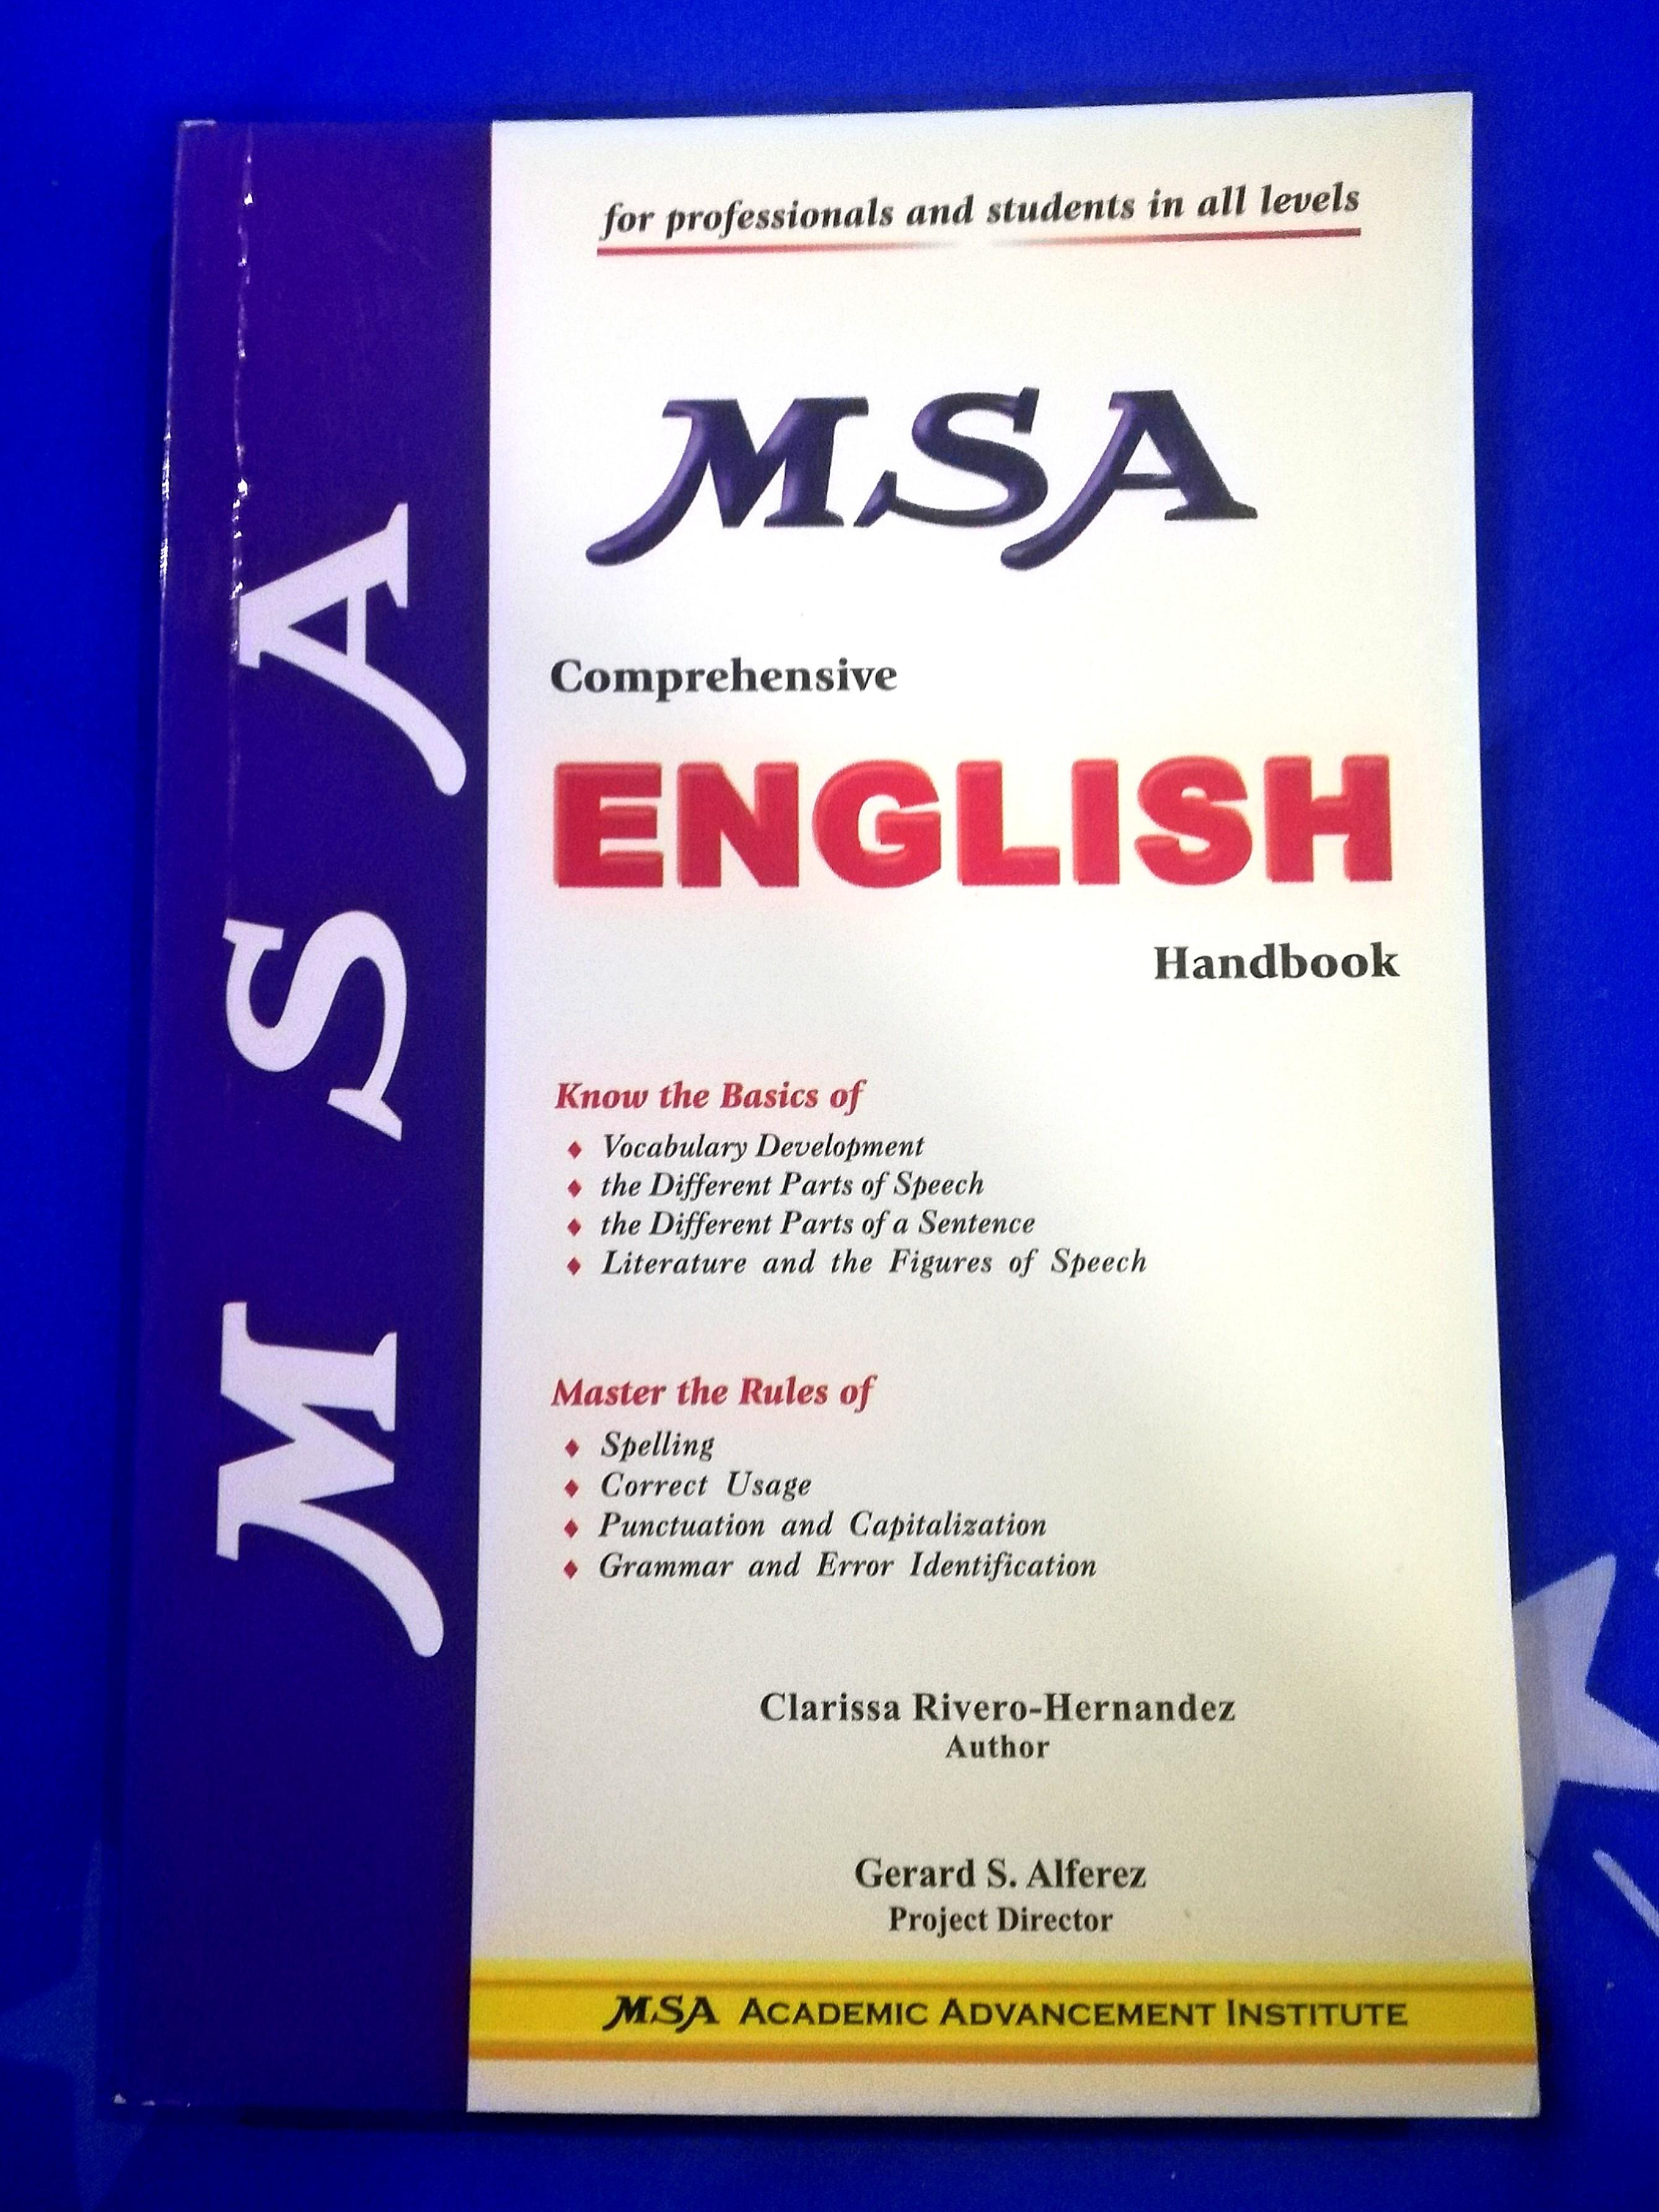 (Brand New!!) MSA Comprehensive English Handbook - for students and professionals